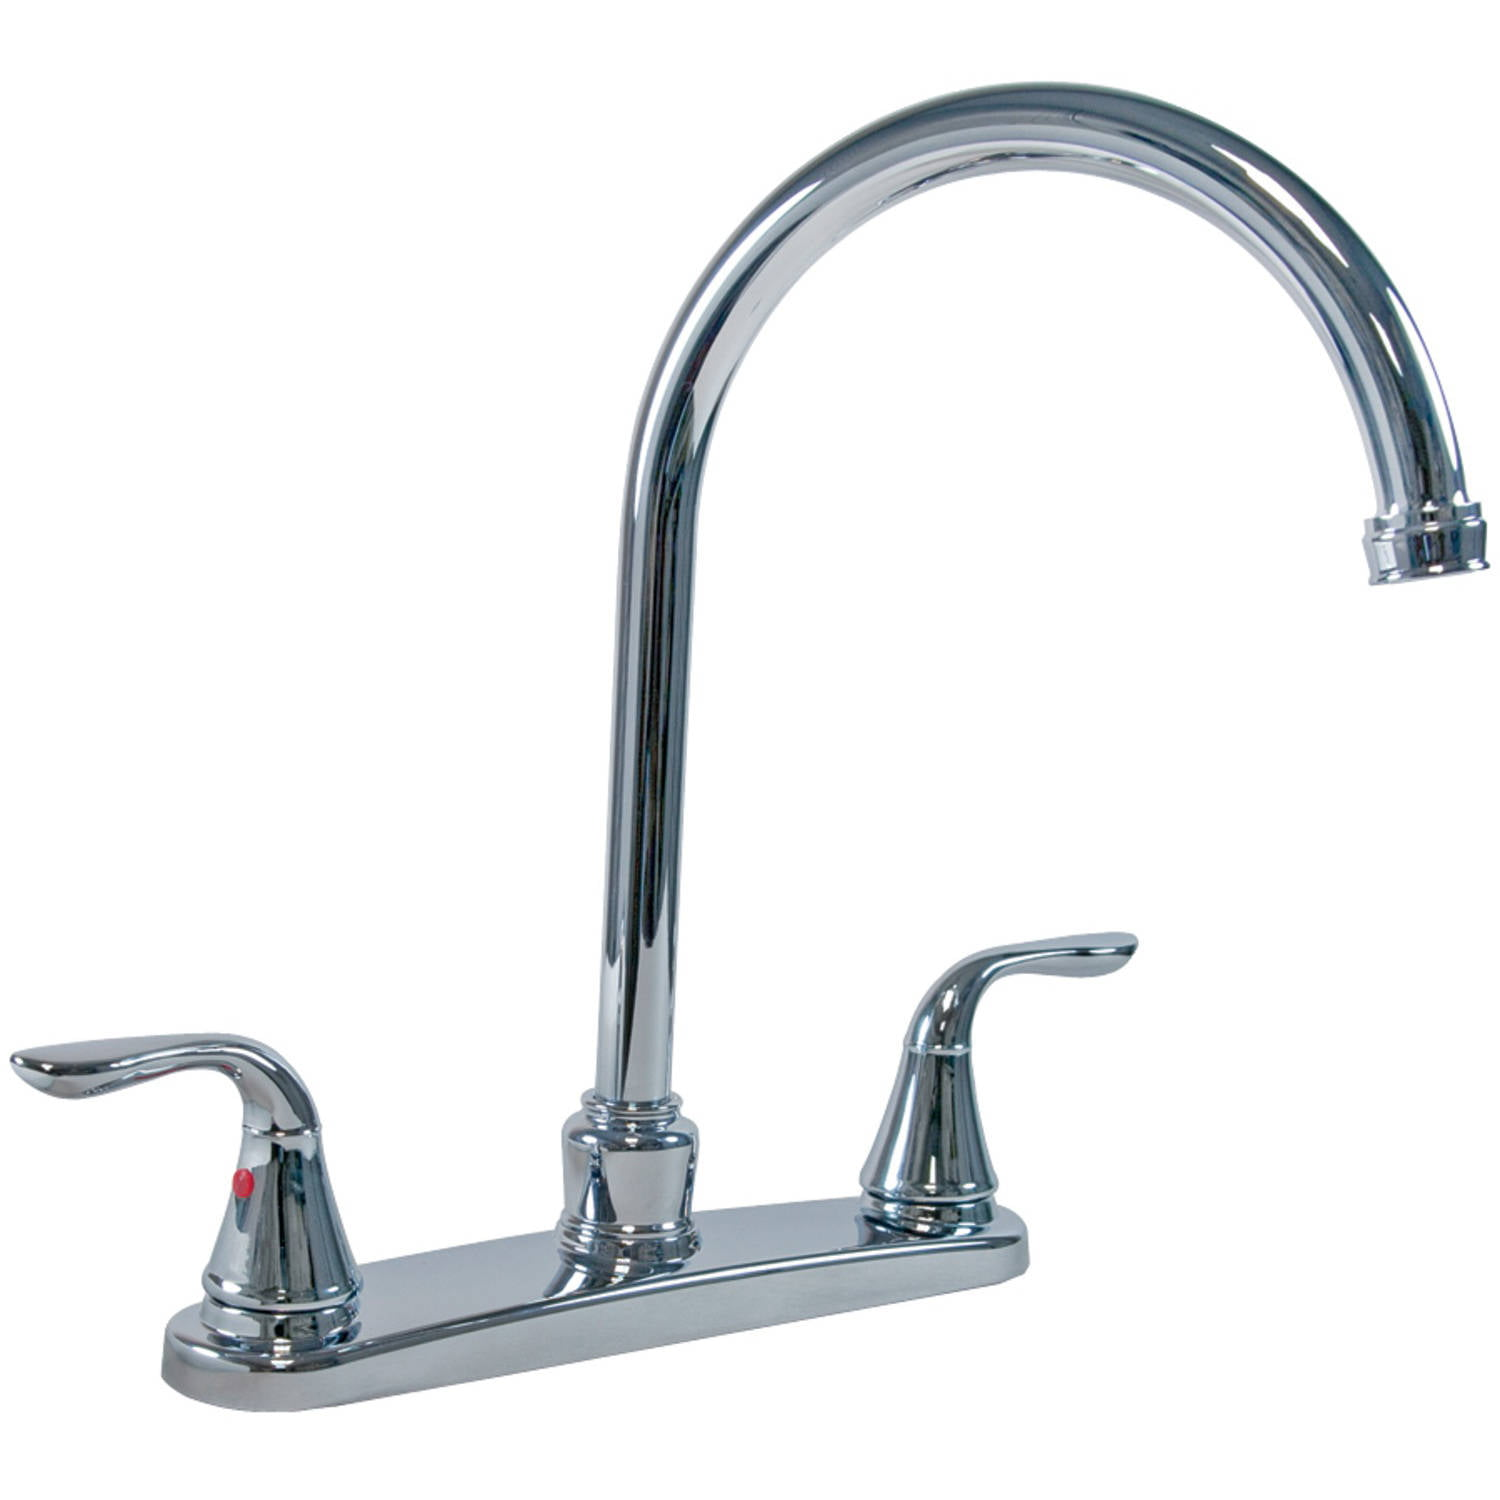 Aqua plumb 1558030 chrome plated 2 handle gooseneck kitchen faucet walmart com